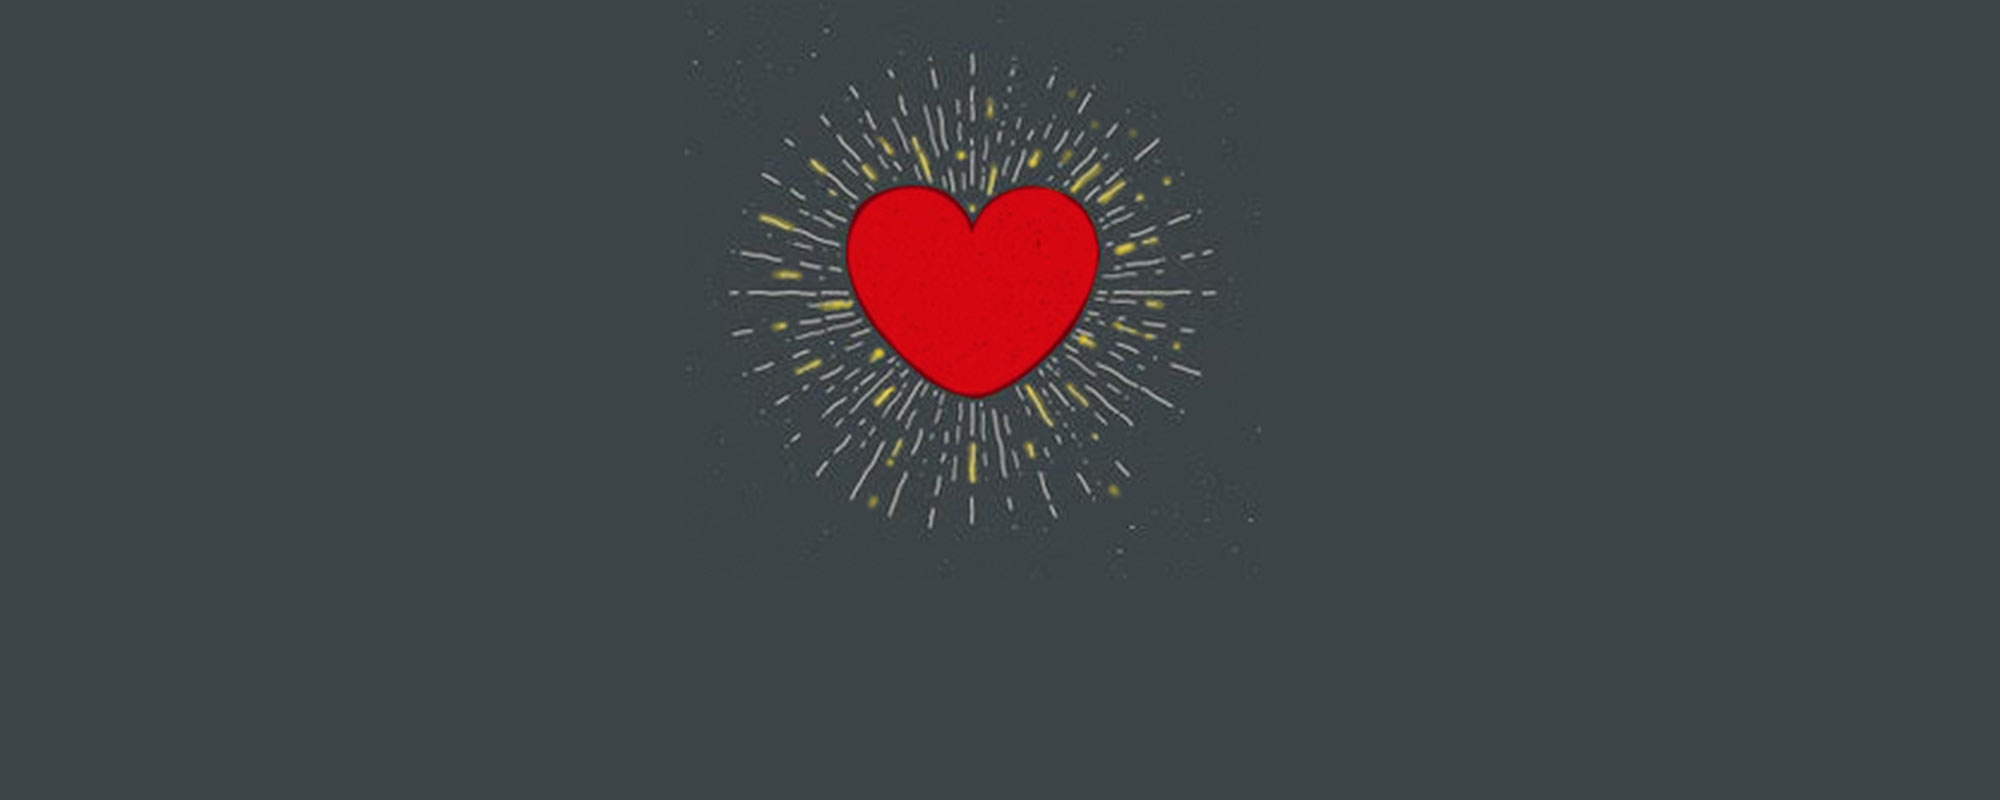 Heart of Kindness